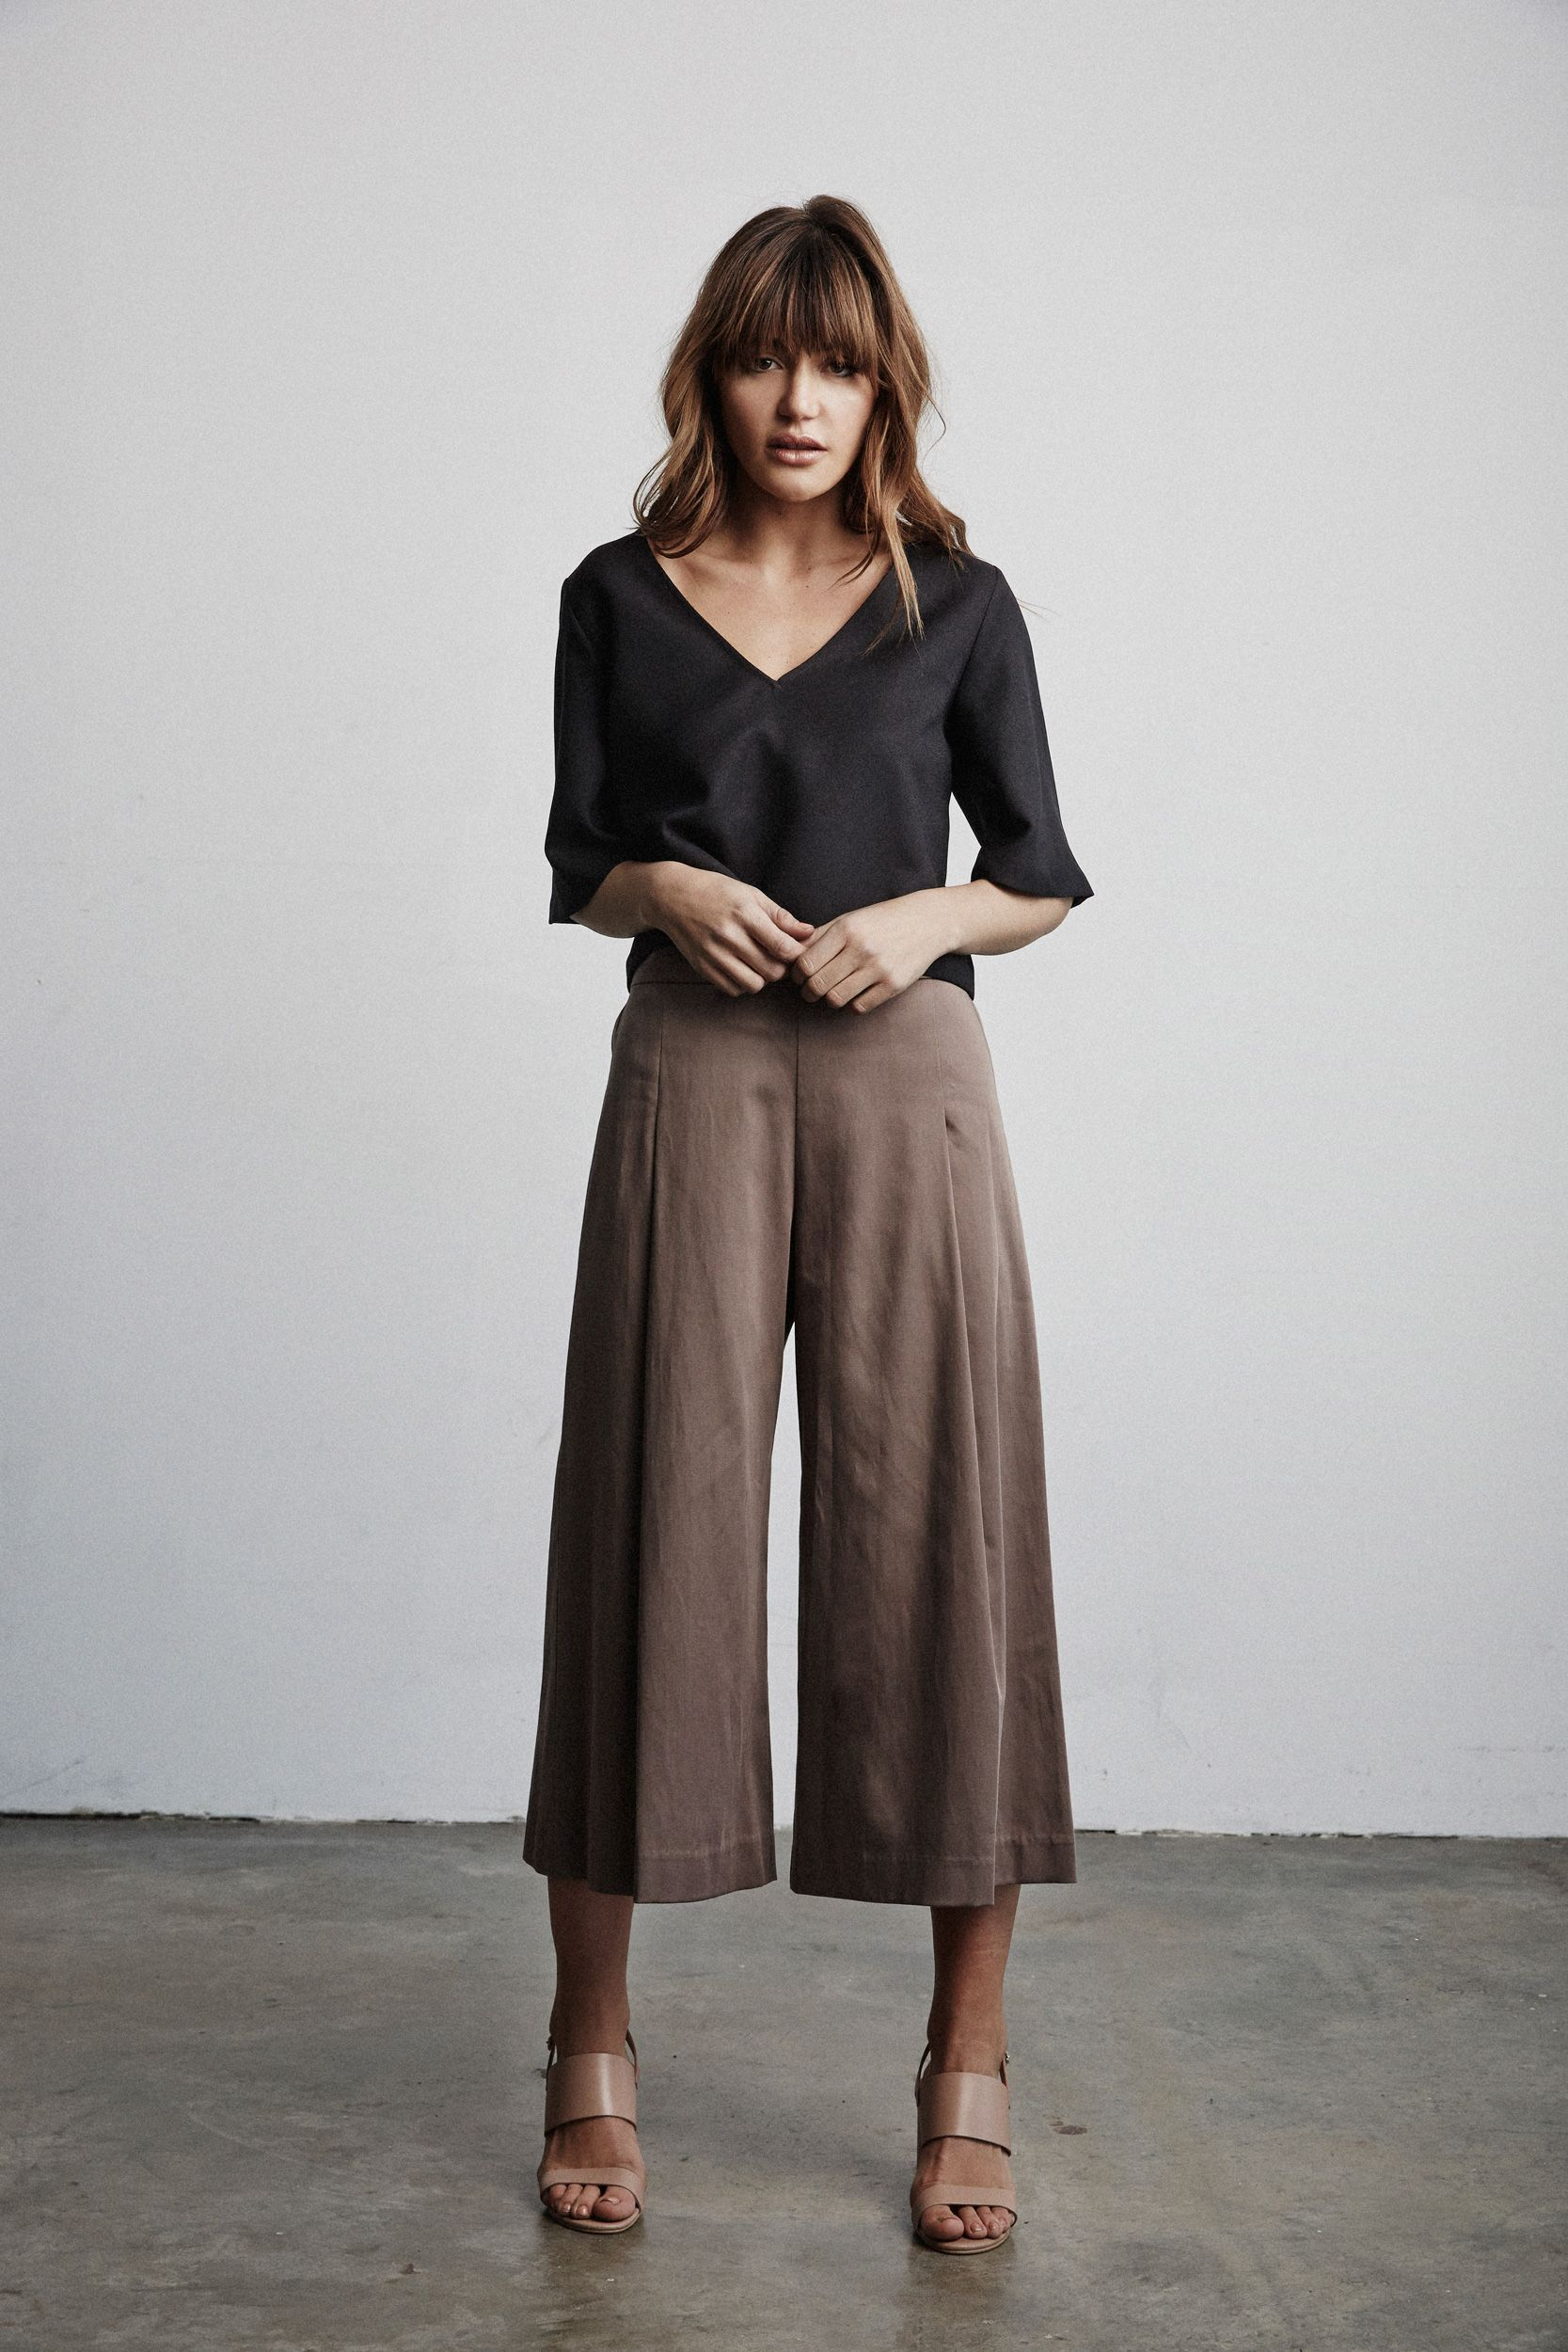 Vetta Capsule SS16 The Blouse V neck in front The Culottes